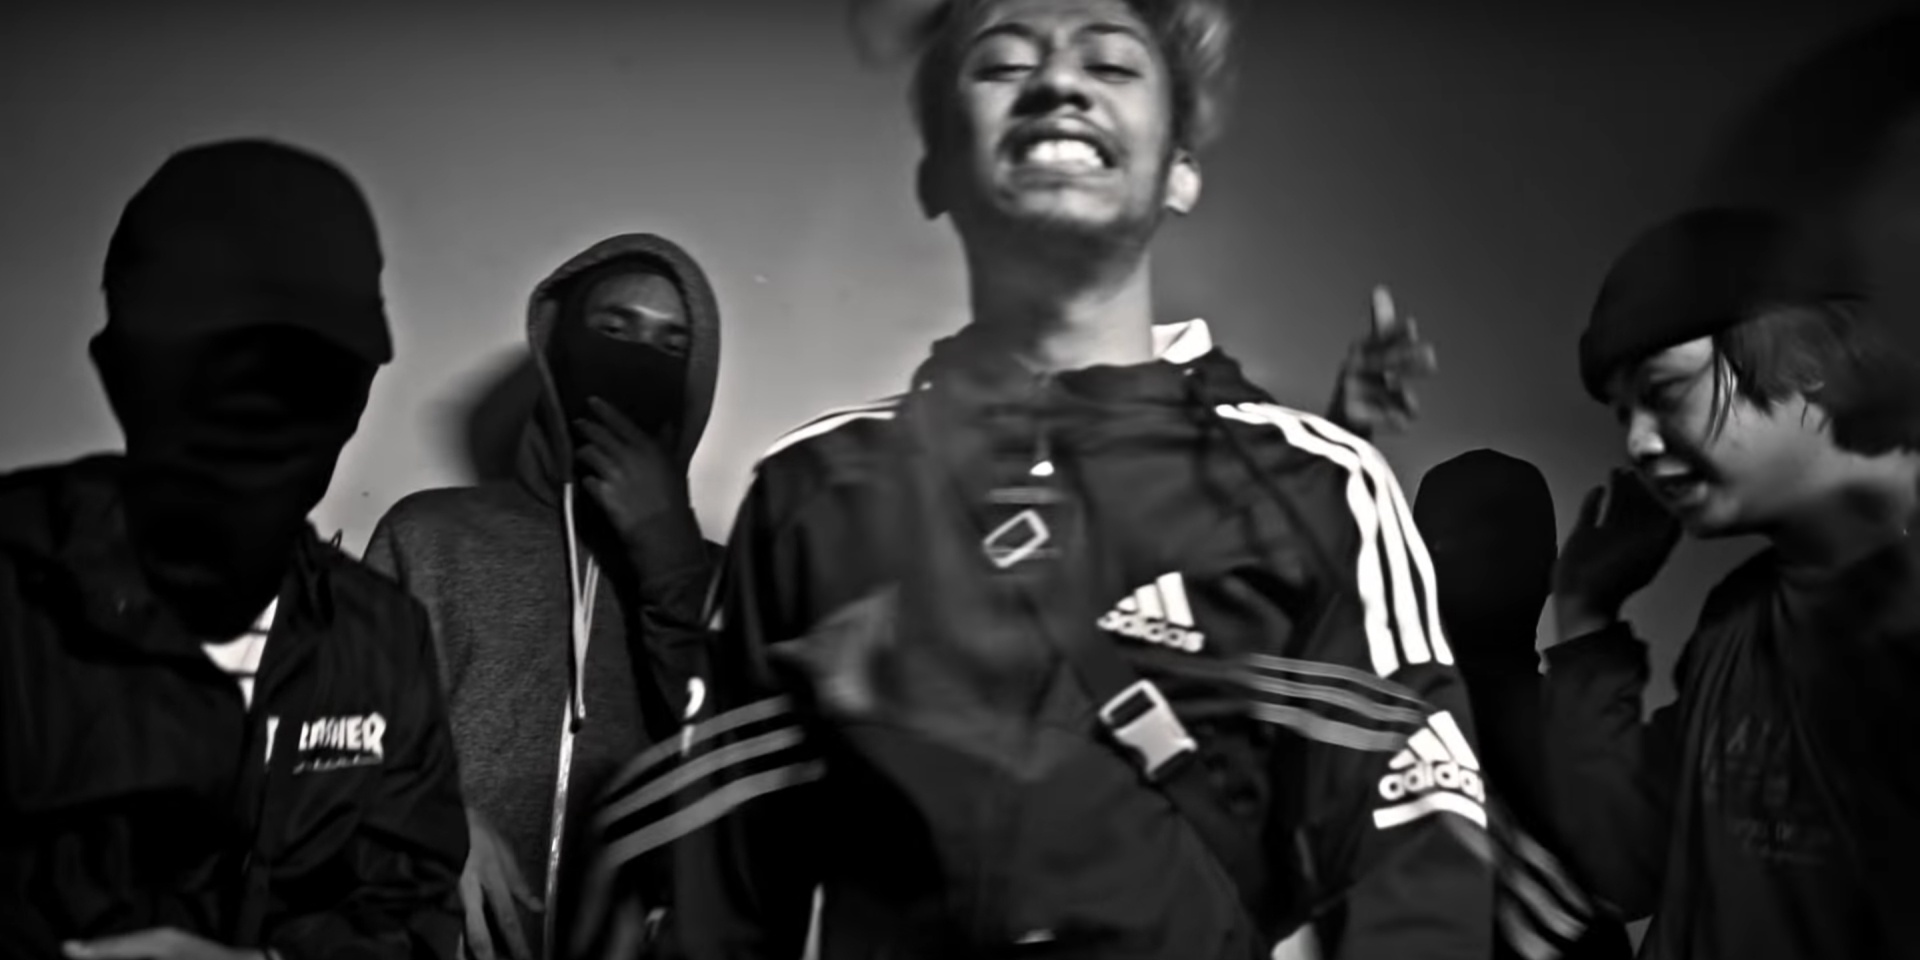 AE$OP CA$H shares fiery, aggressive music video for 'KILT' – watch